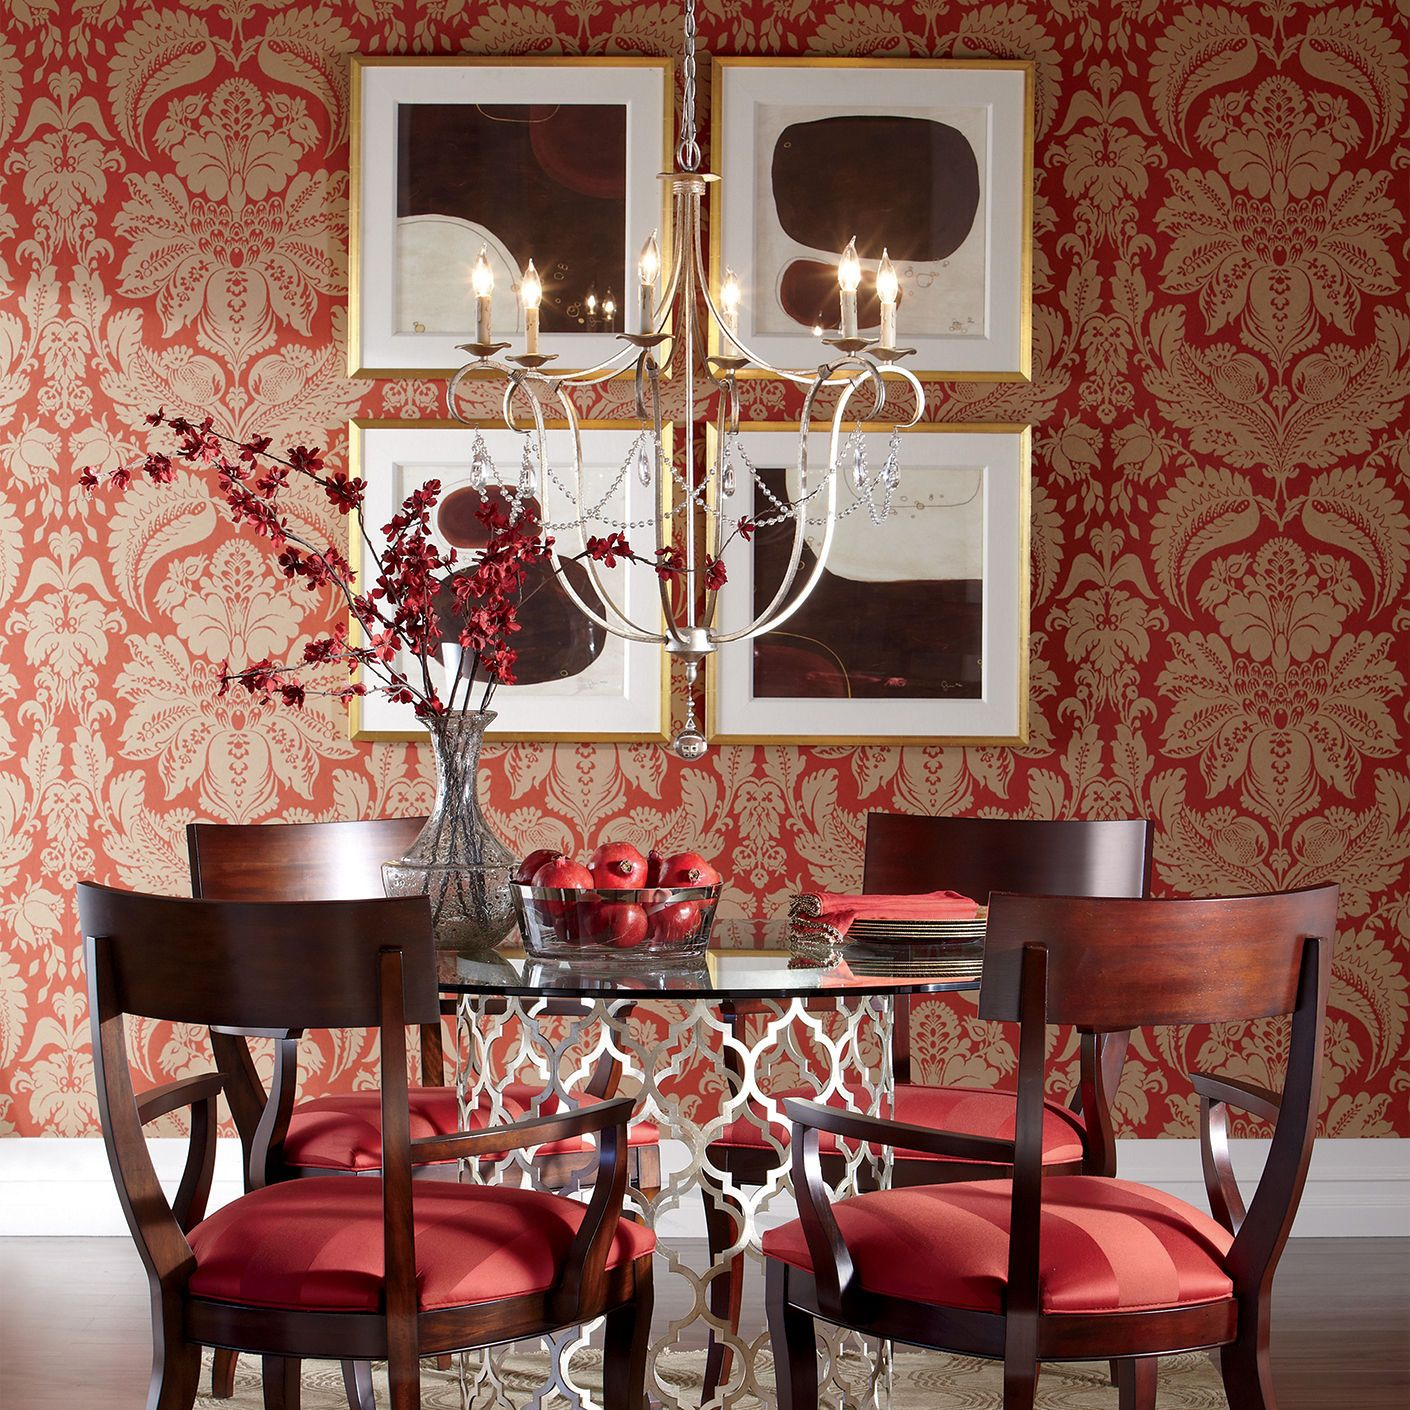 Ethan Allen Dining Room: Pin By Ethan Allen Buford, GA On Red